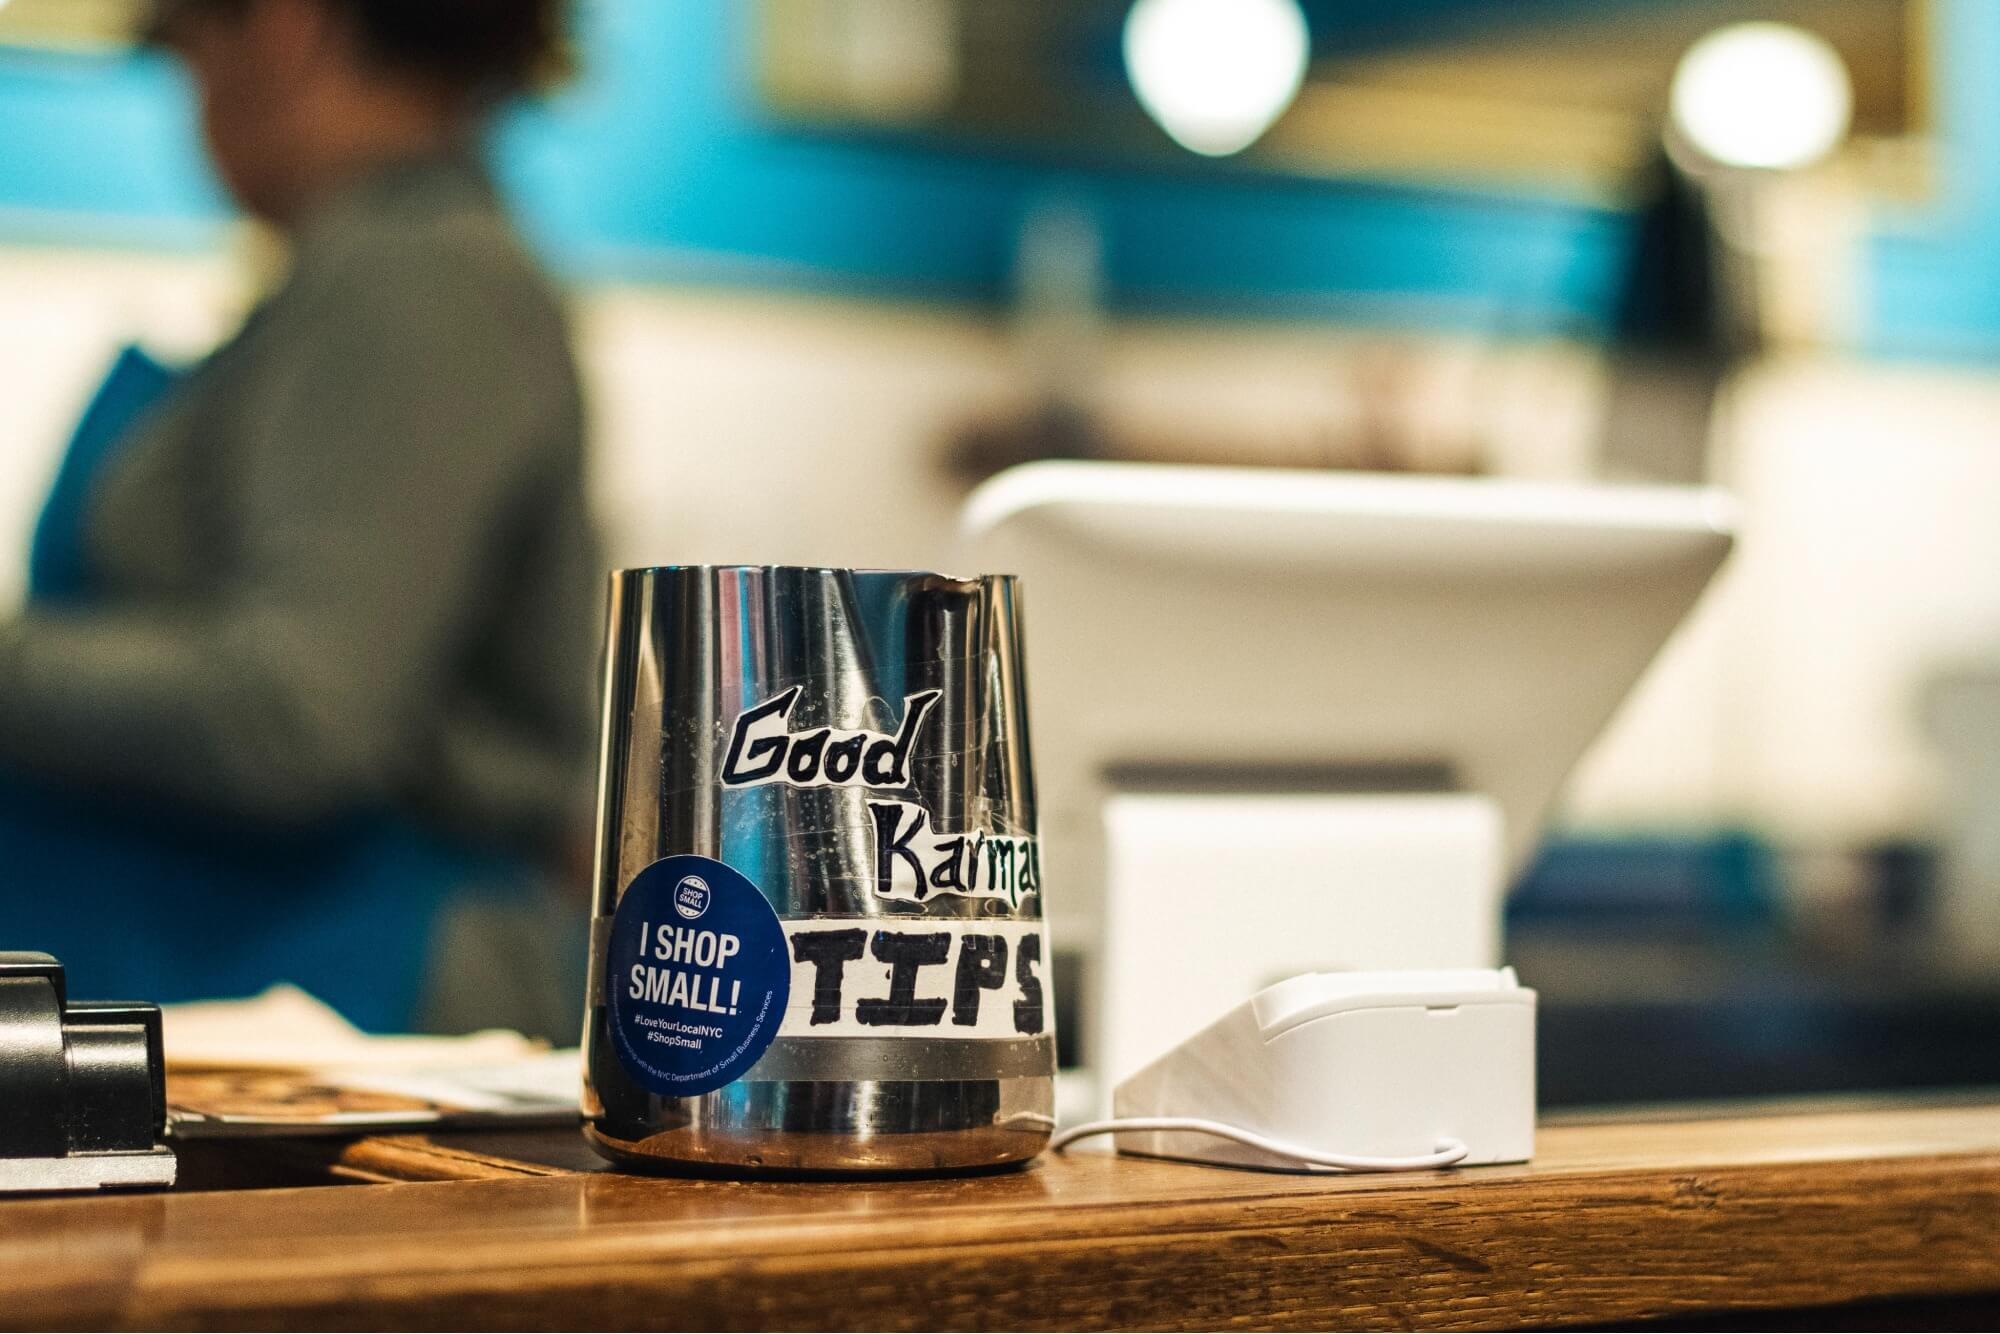 """A metal tip jar that reads """"Good Karma Tips"""" placed on a wooden counter next to a POS system at a restaurant that practices tip pooling."""